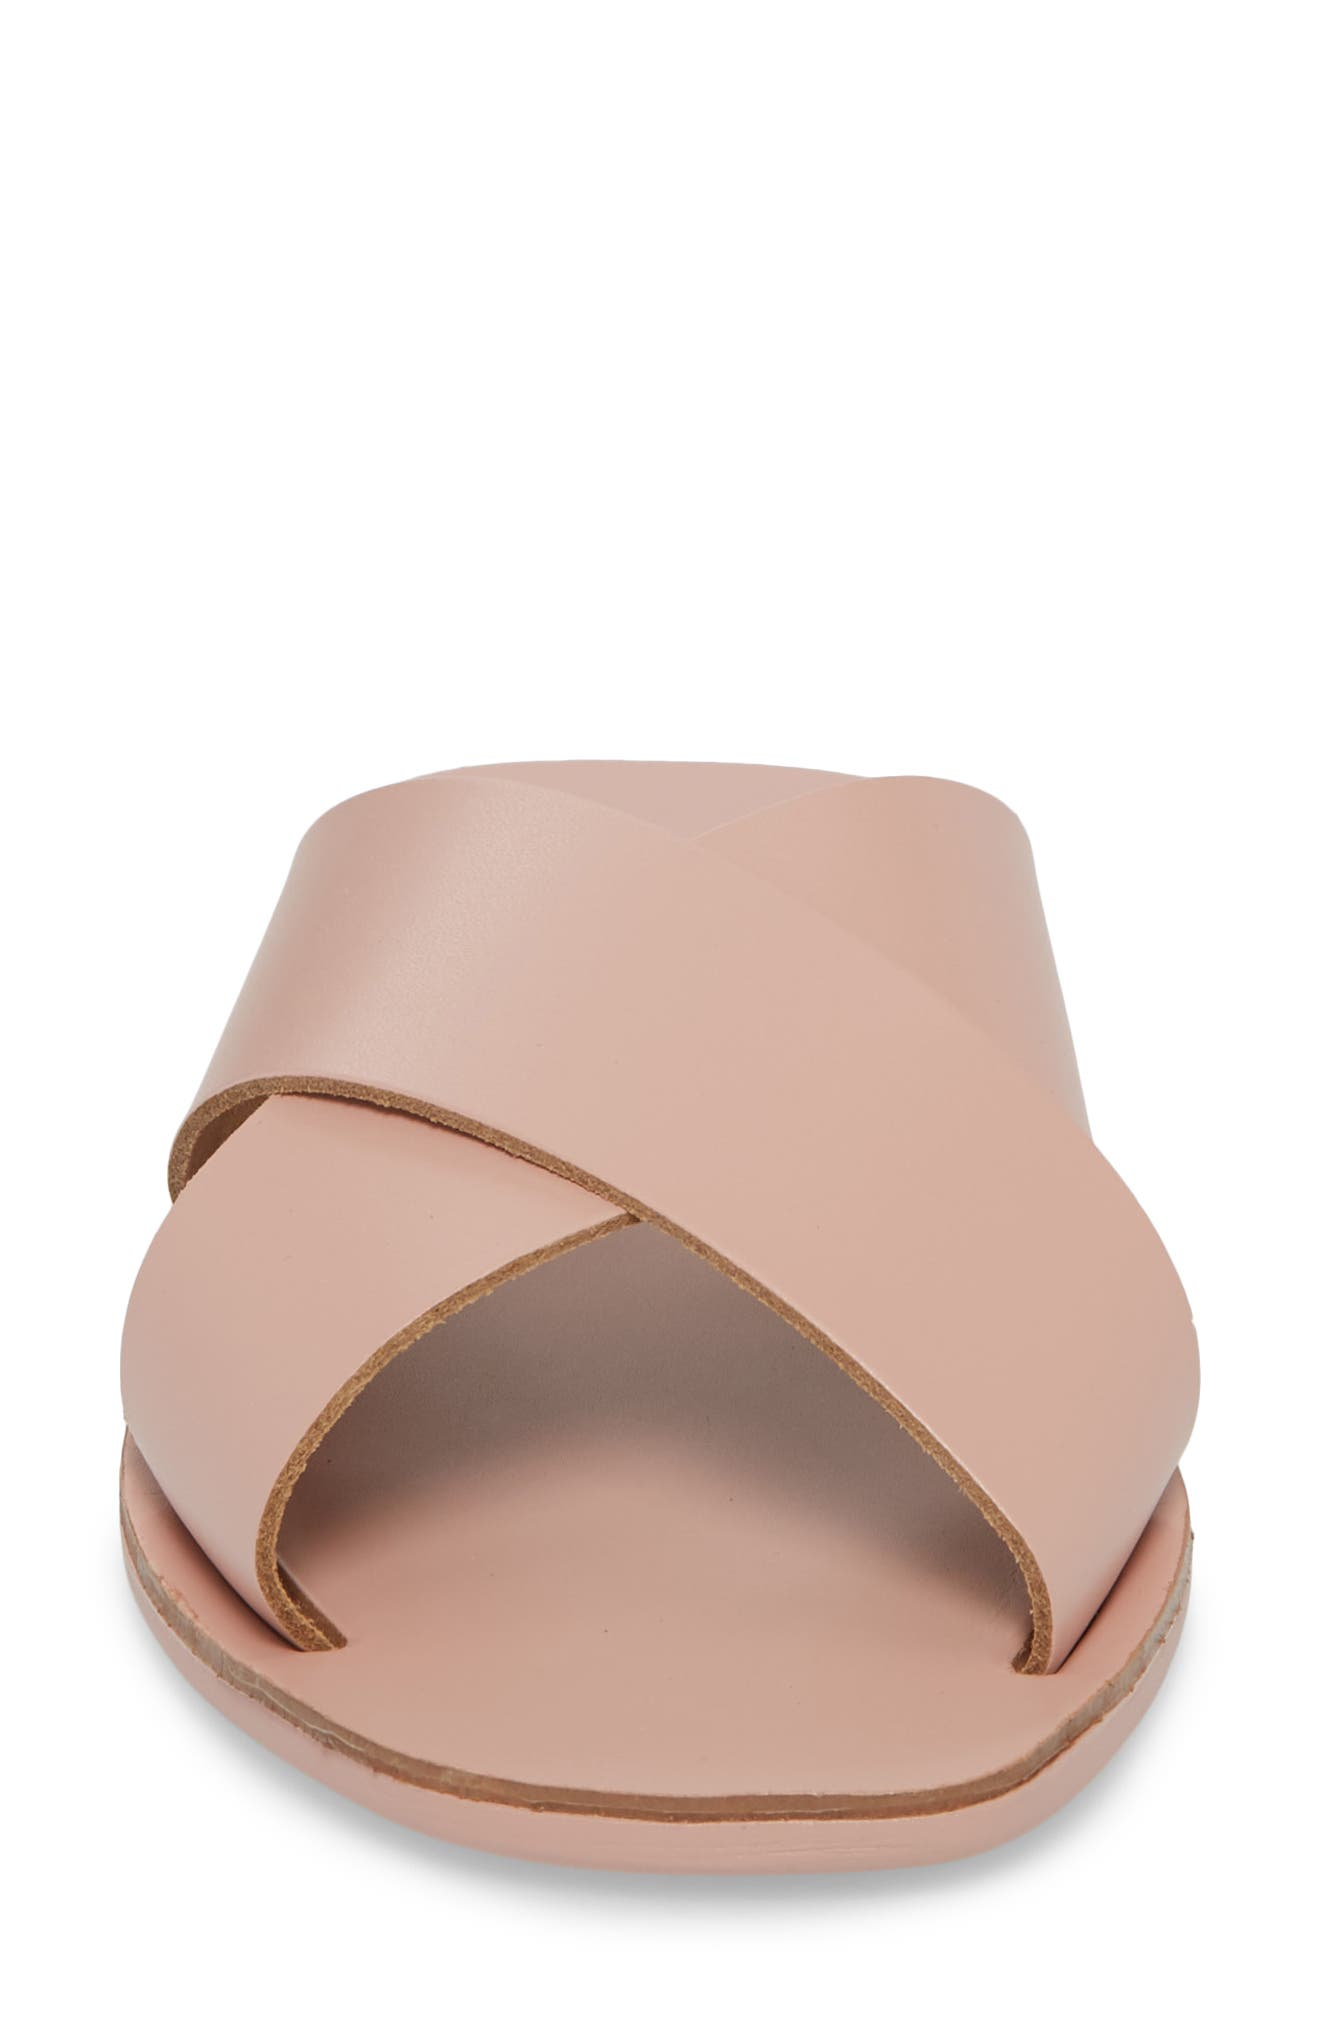 Total Relaxation Slide Sandal,                             Alternate thumbnail 4, color,                             Pink Leather